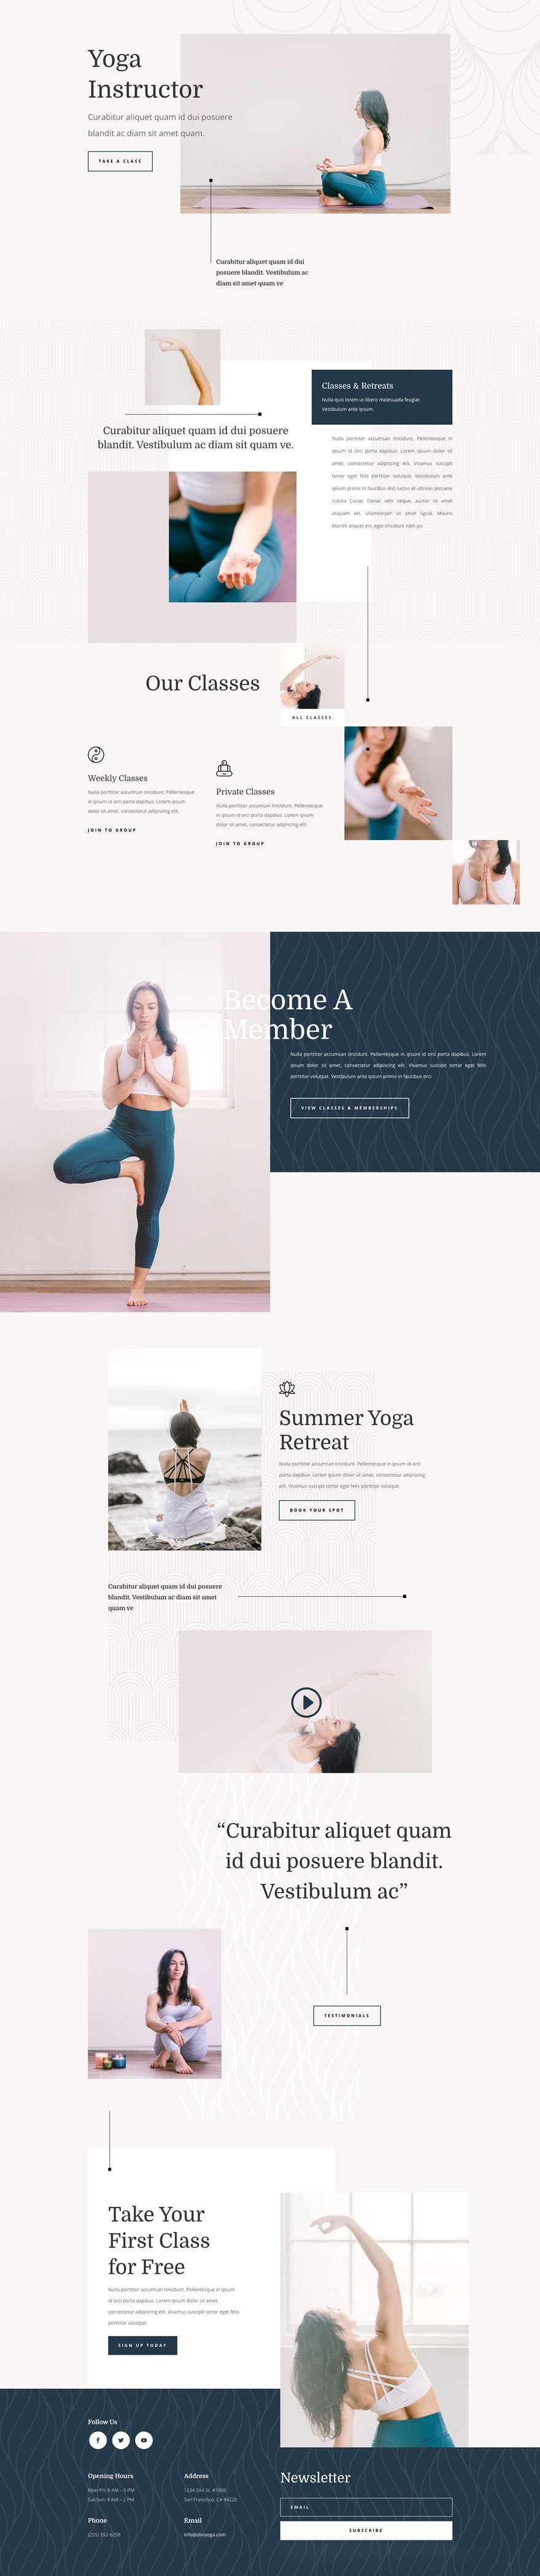 Divi yoga instructor layout